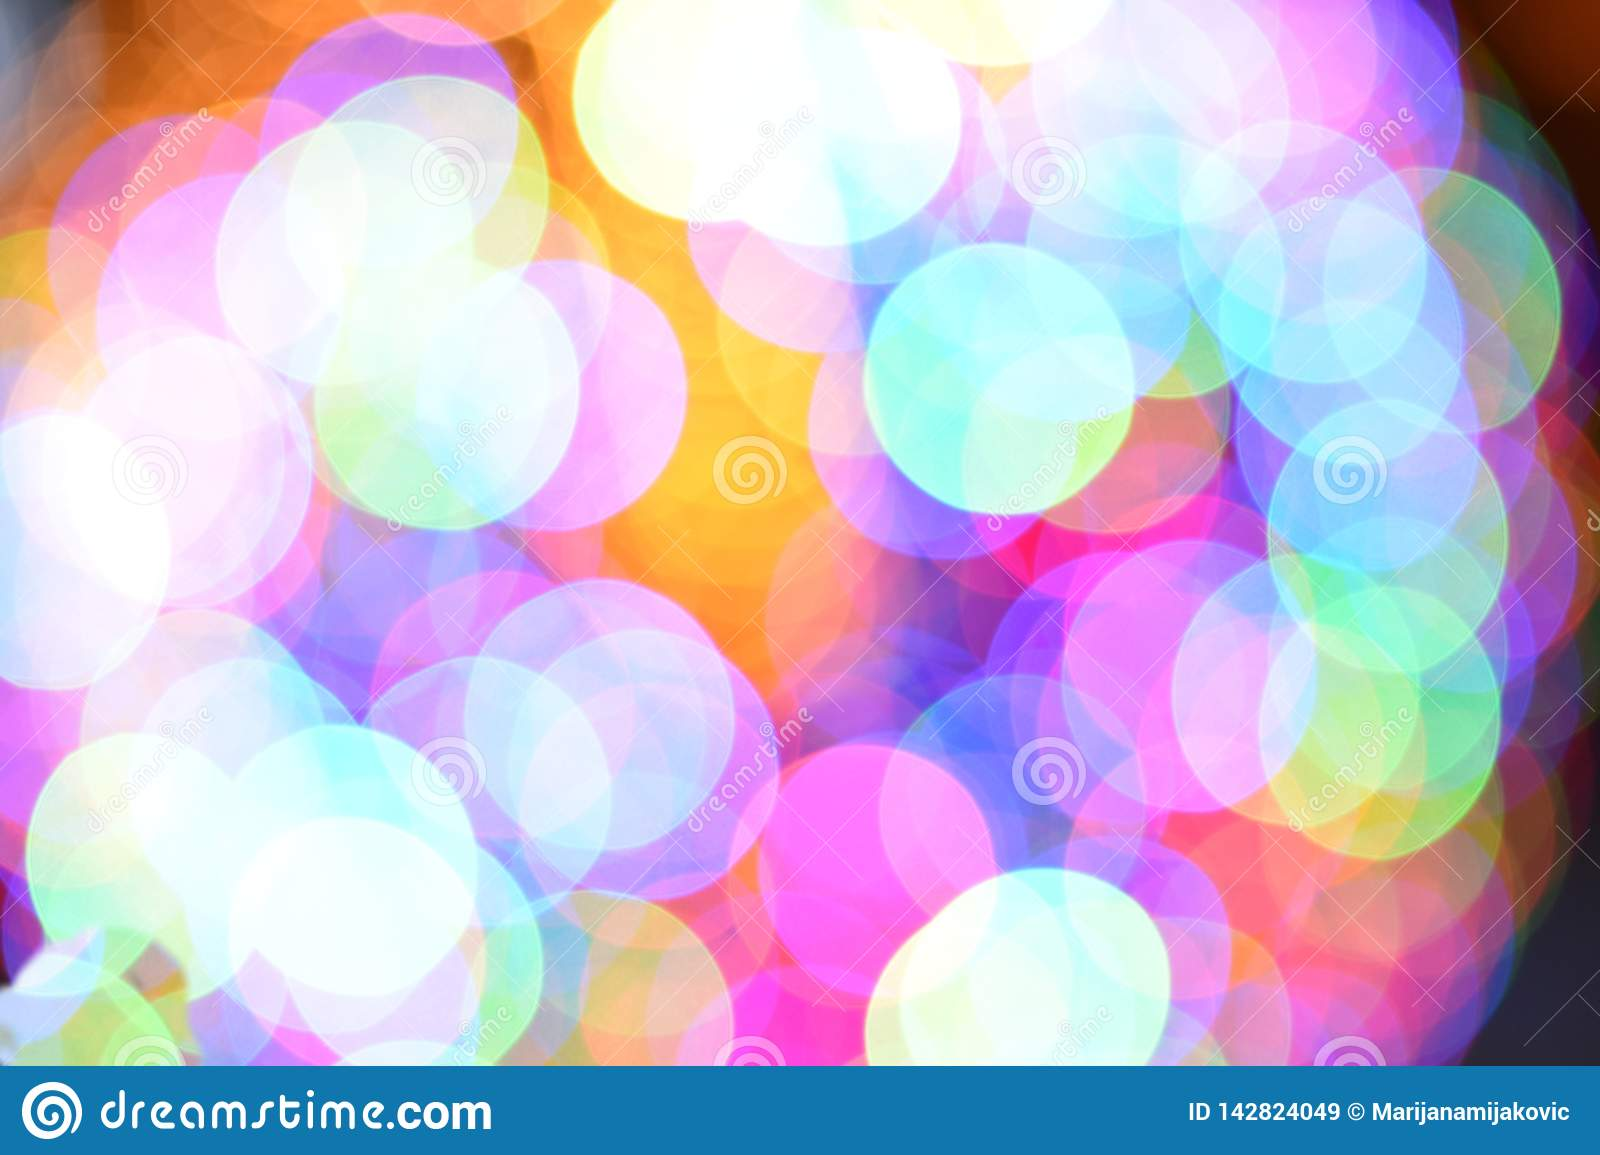 Very bright colorful light blue and pink bokeh background